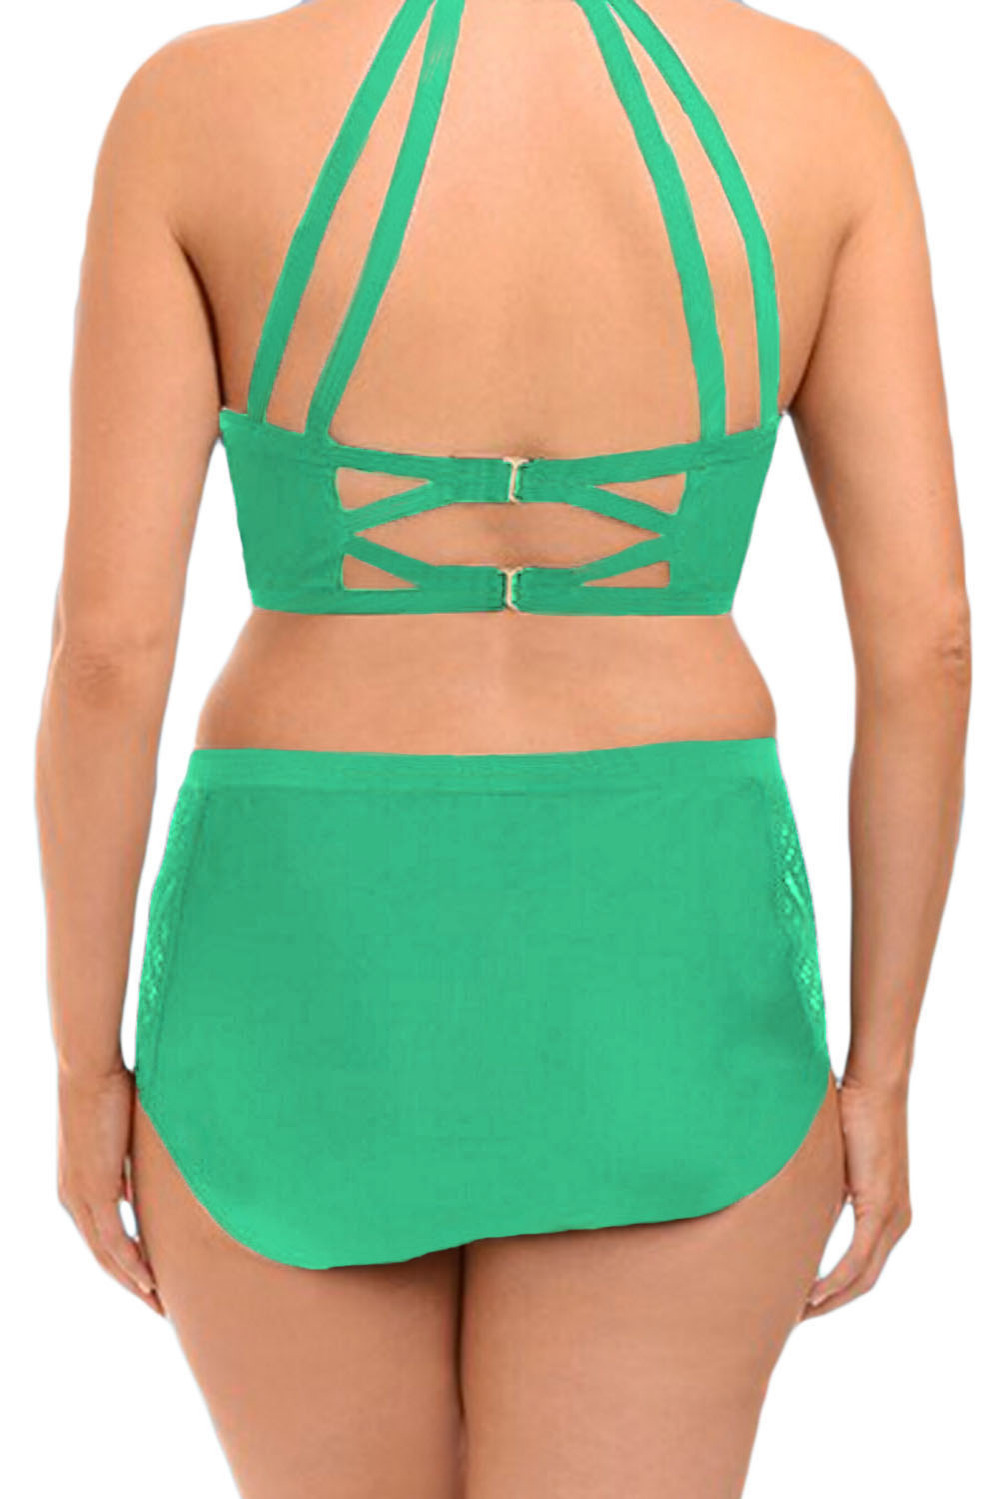 4d2993cd11 high neck padded swimsuit Plus Size High Waist Swimsuit Halter Padded Push  Up Swimwear Bikini for Large Breasted Women 4XL 41991-in Bikinis Set from  Sports ...